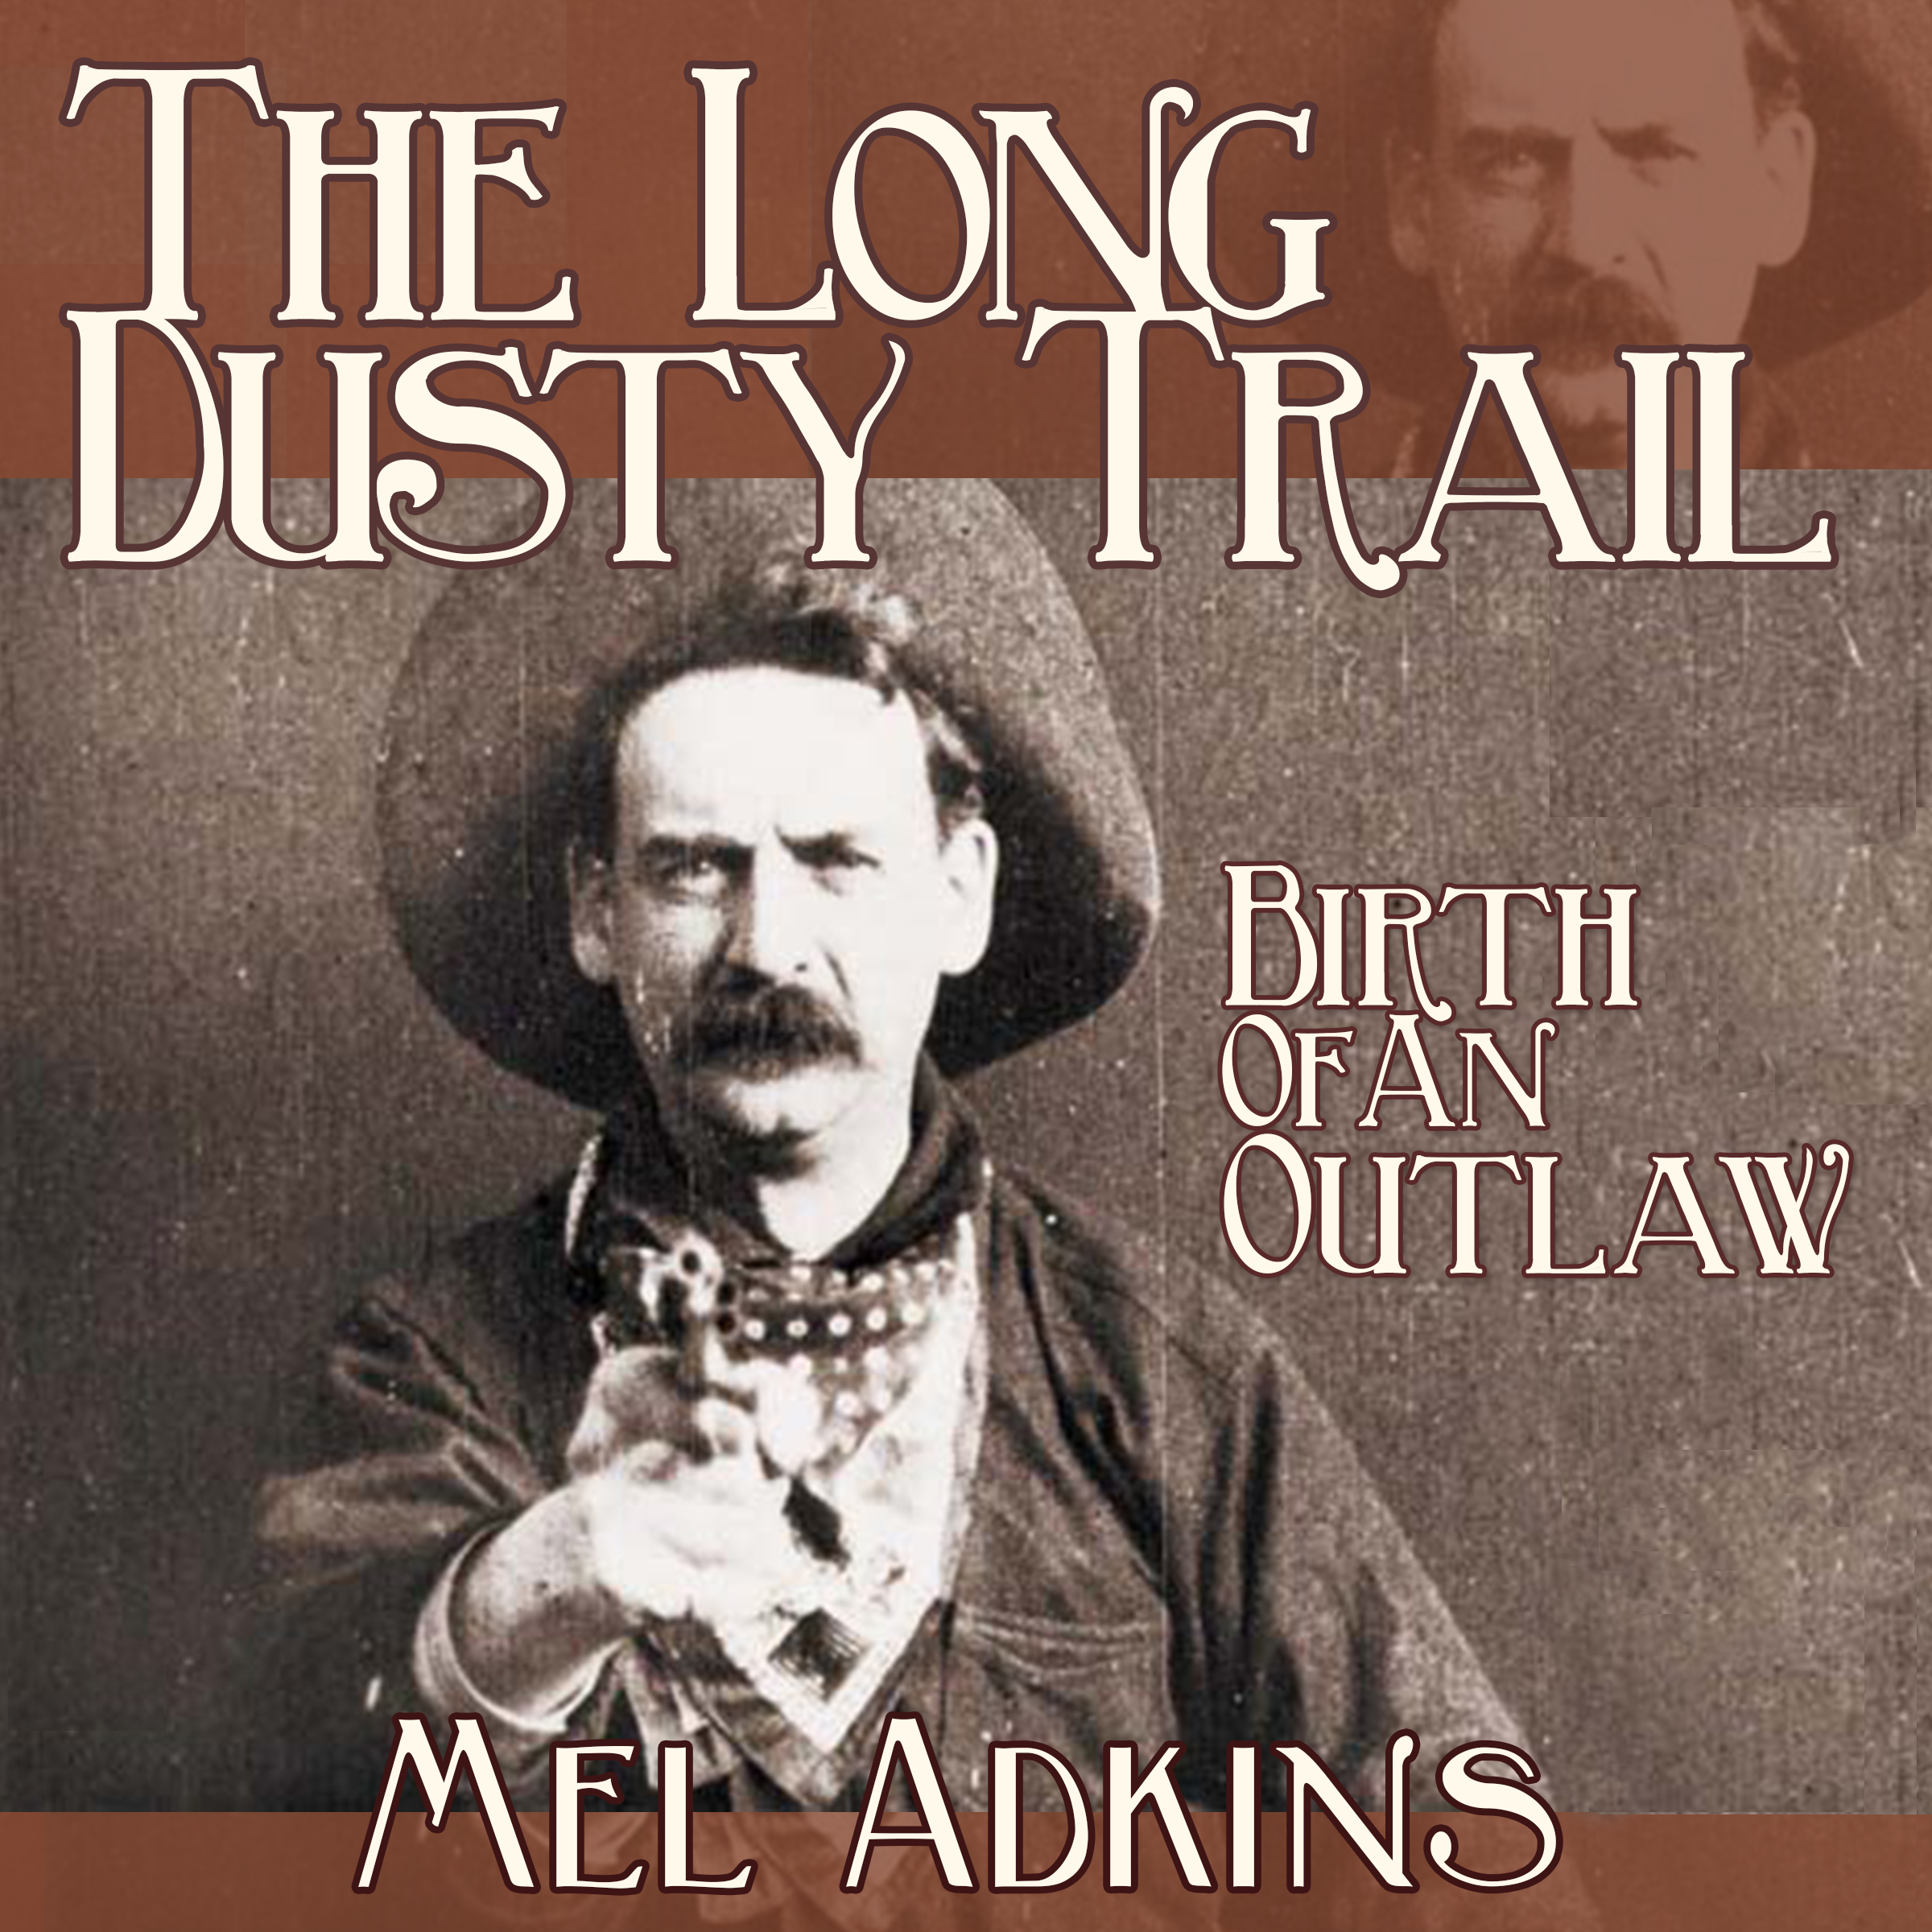 The Long Dusty Trail - Book 3